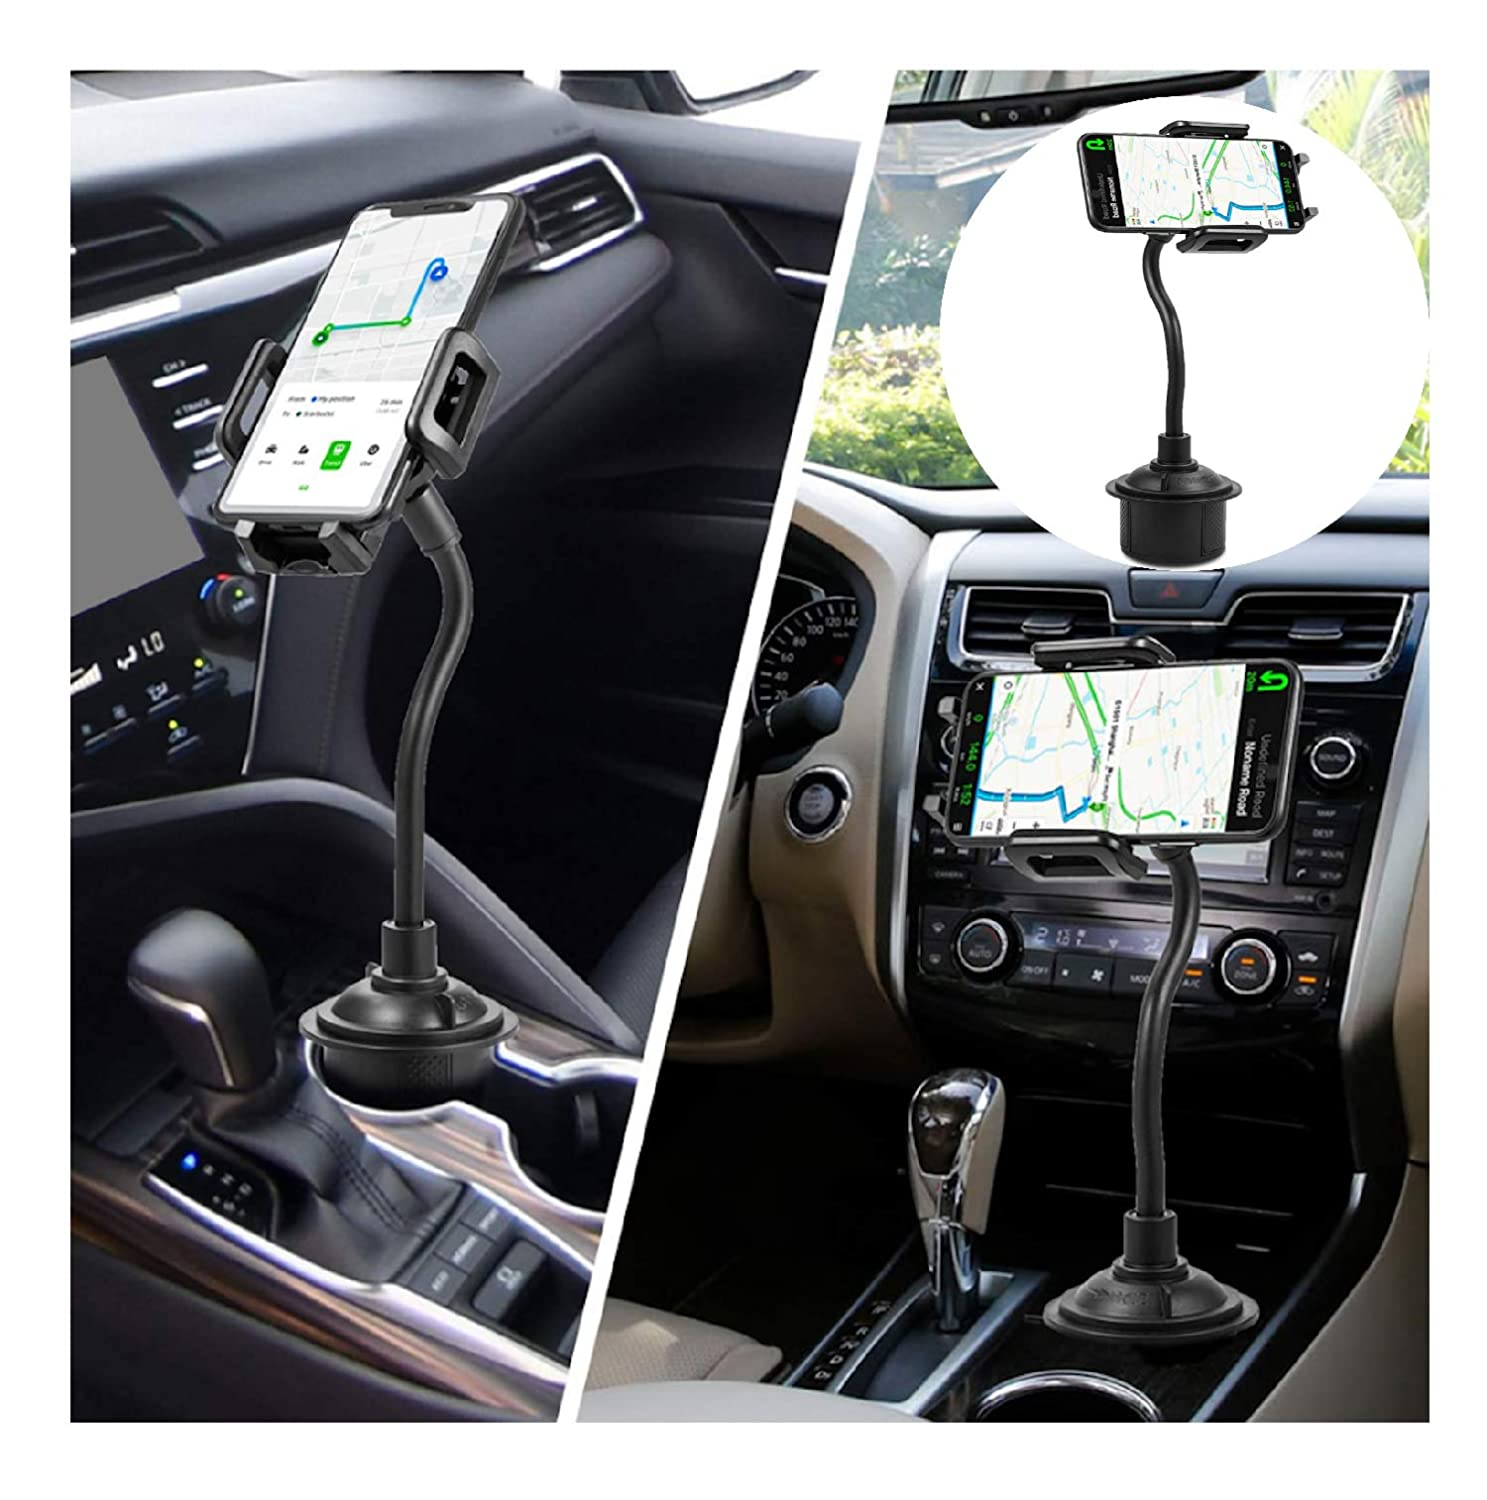 Samsung and GPS Car Mount Holder Cradle Adjustable Long Arm Cell Phone Holder with 360/° Rotatable Cradle for Most Smartphones Such as iPhone